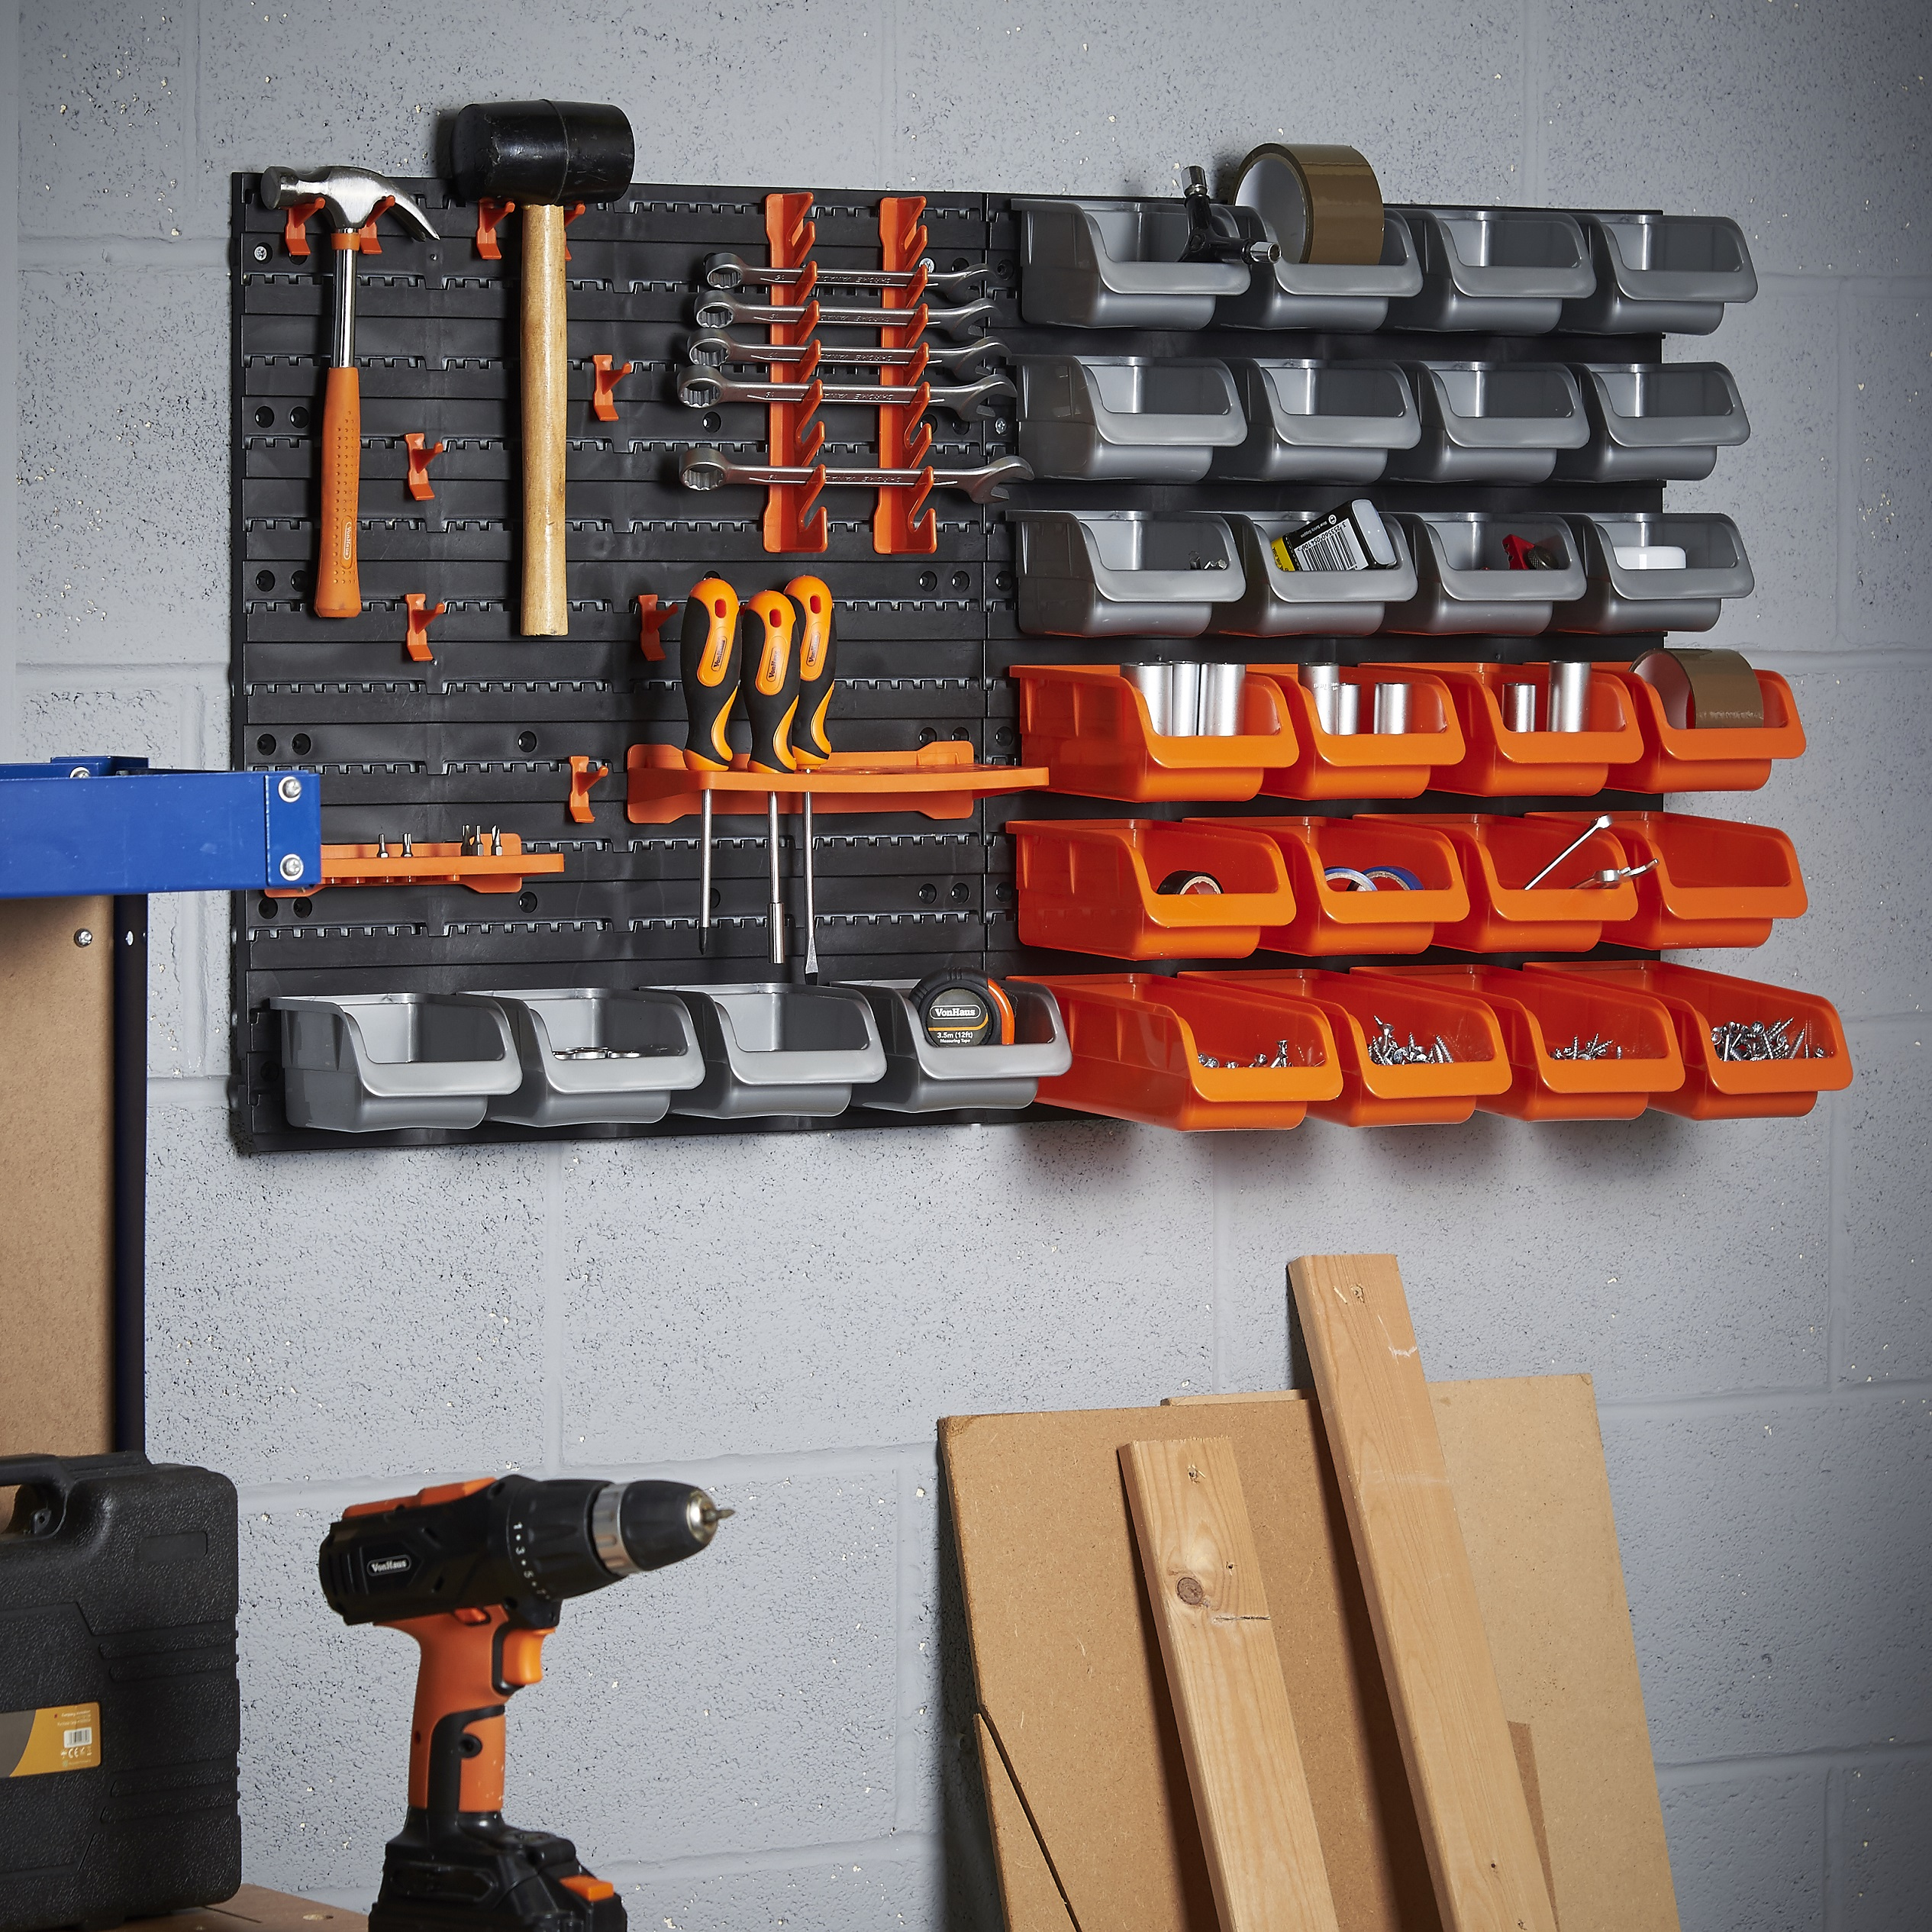 board garage before organization homesmsp pegboard peg use